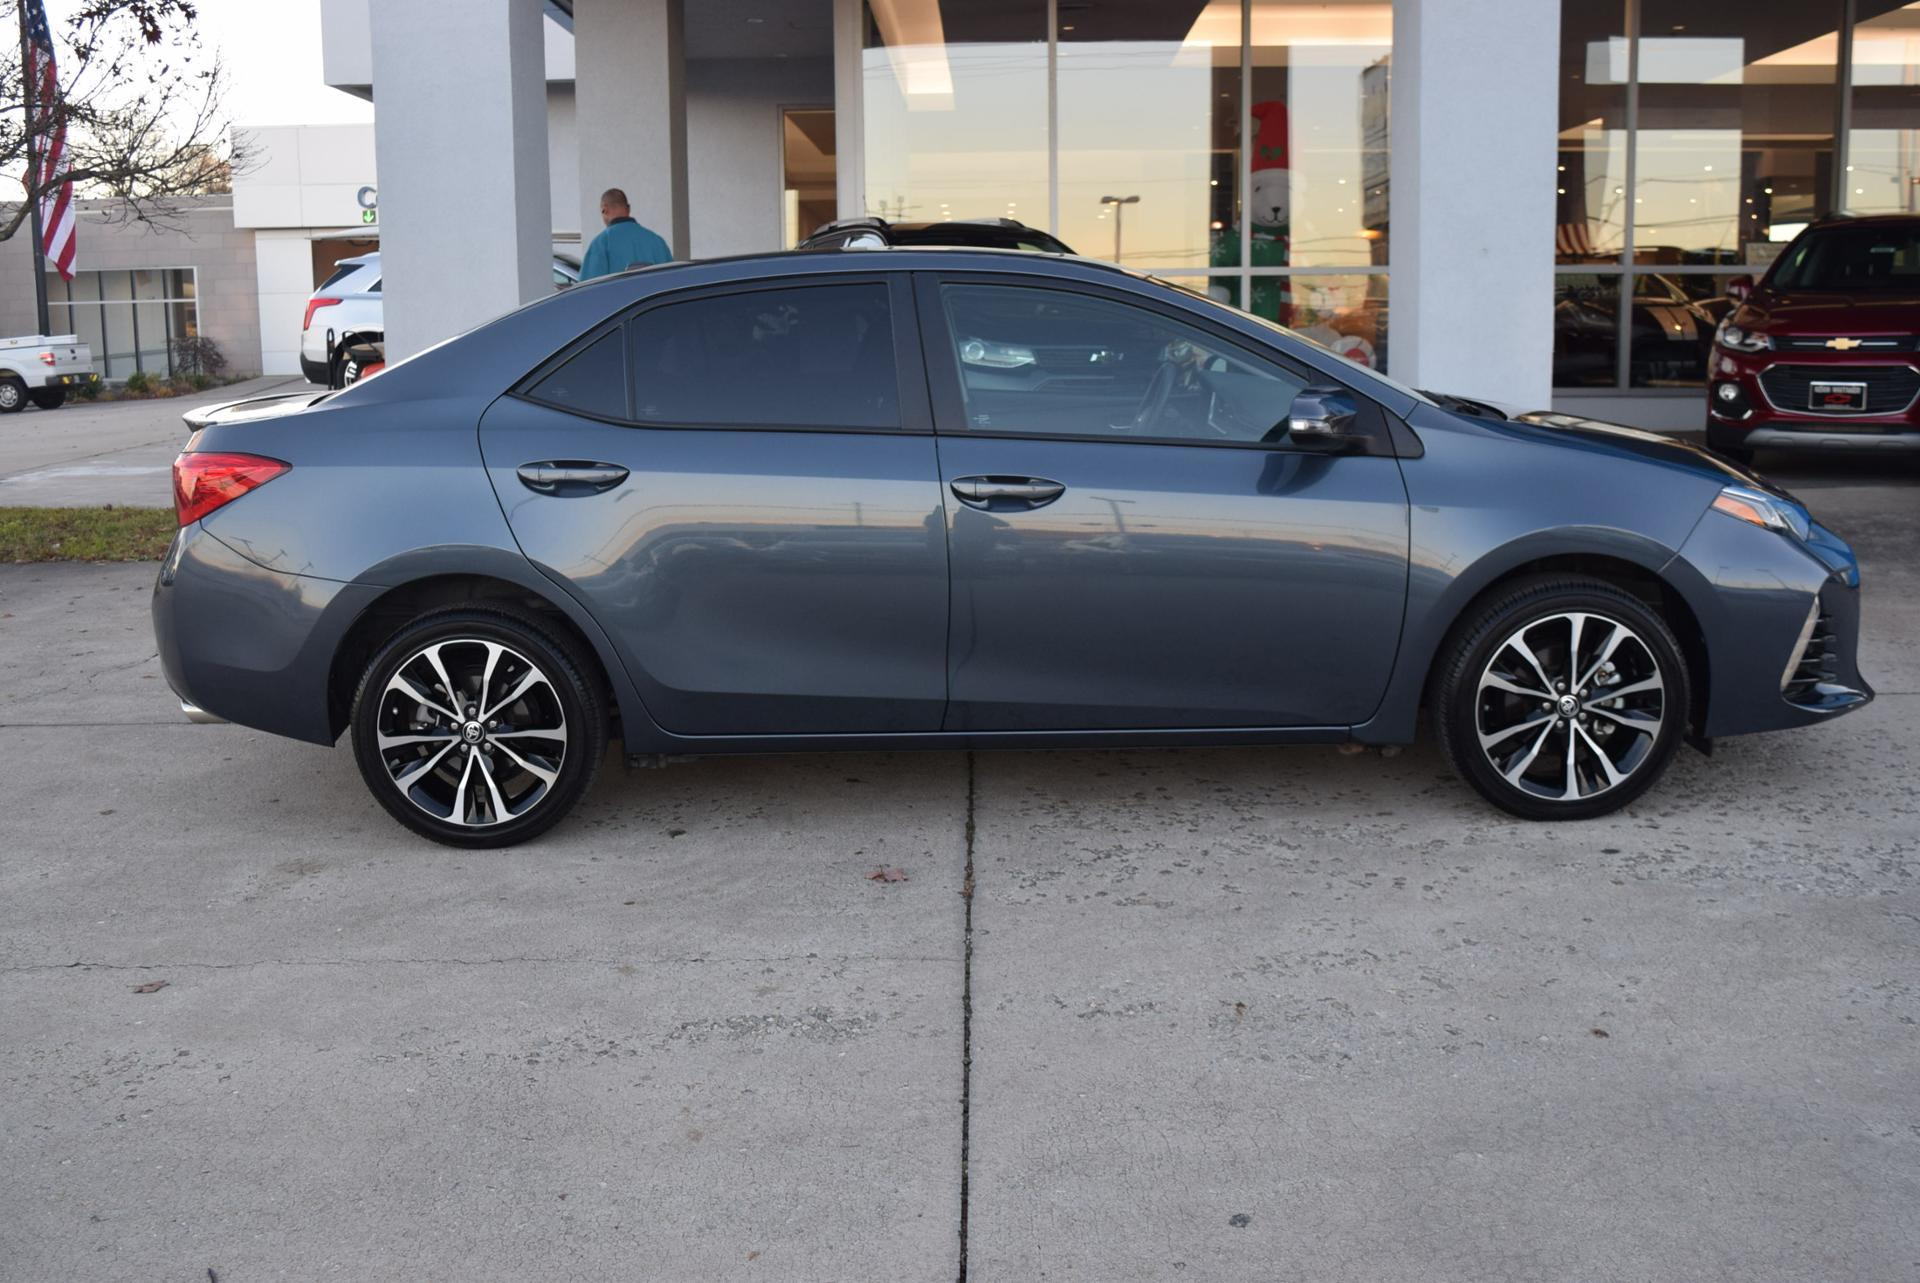 Used toyota Corolla for Sale Awesome Used toyota Corolla for Sale In Greenville